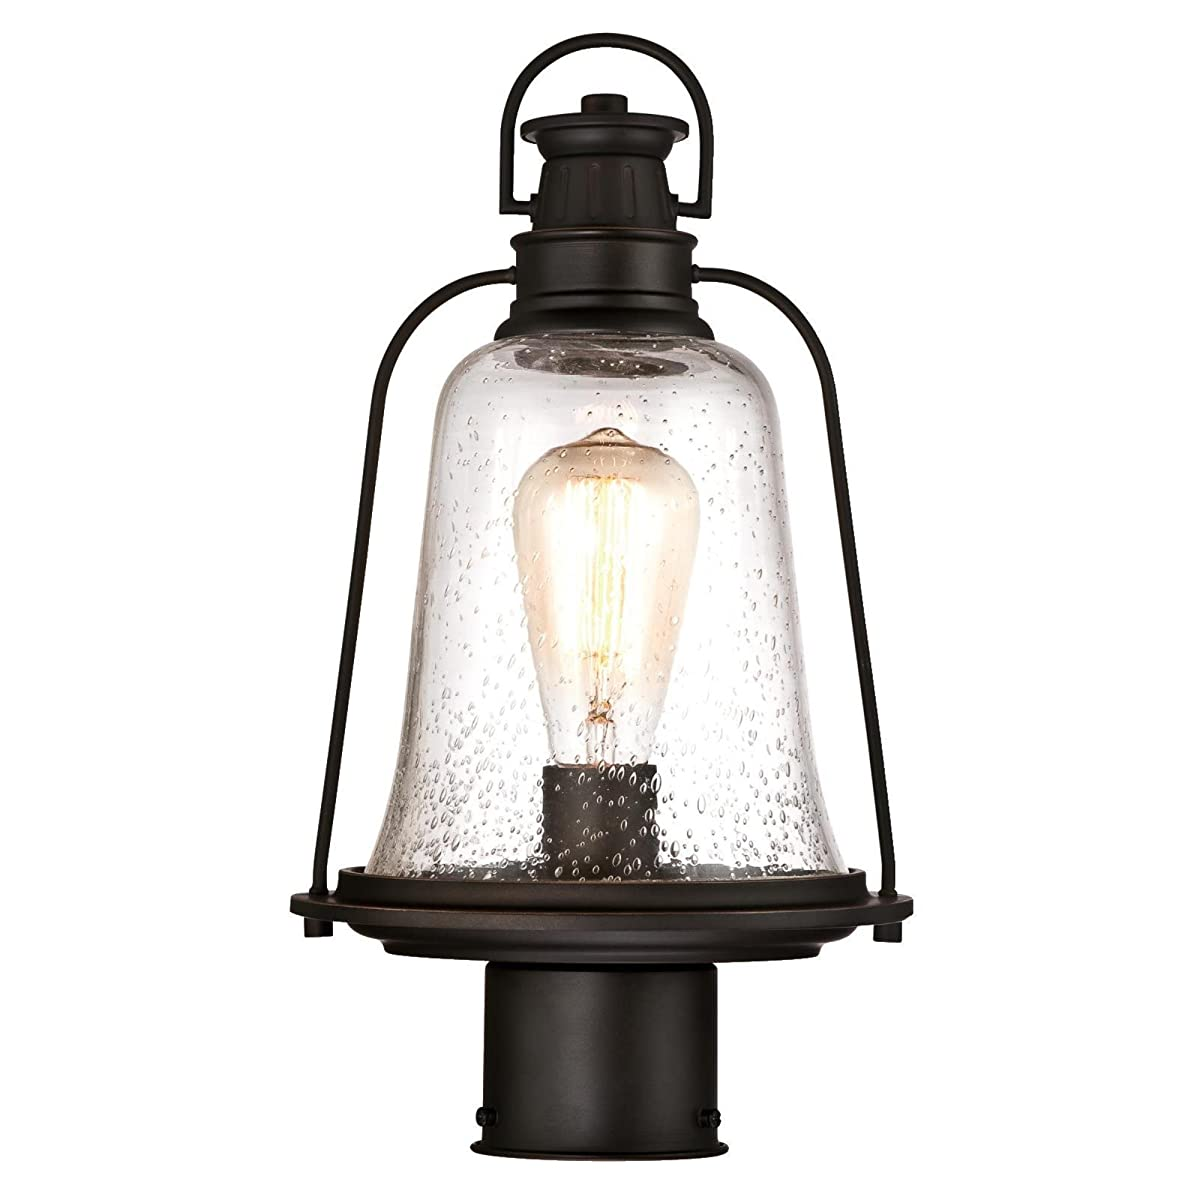 Westinghouse 6347000 Brynn One-Light Outdoor Post-Top Fixture, Oil Rubbed Bronze Finish with Highlights and Clear Seeded Glass